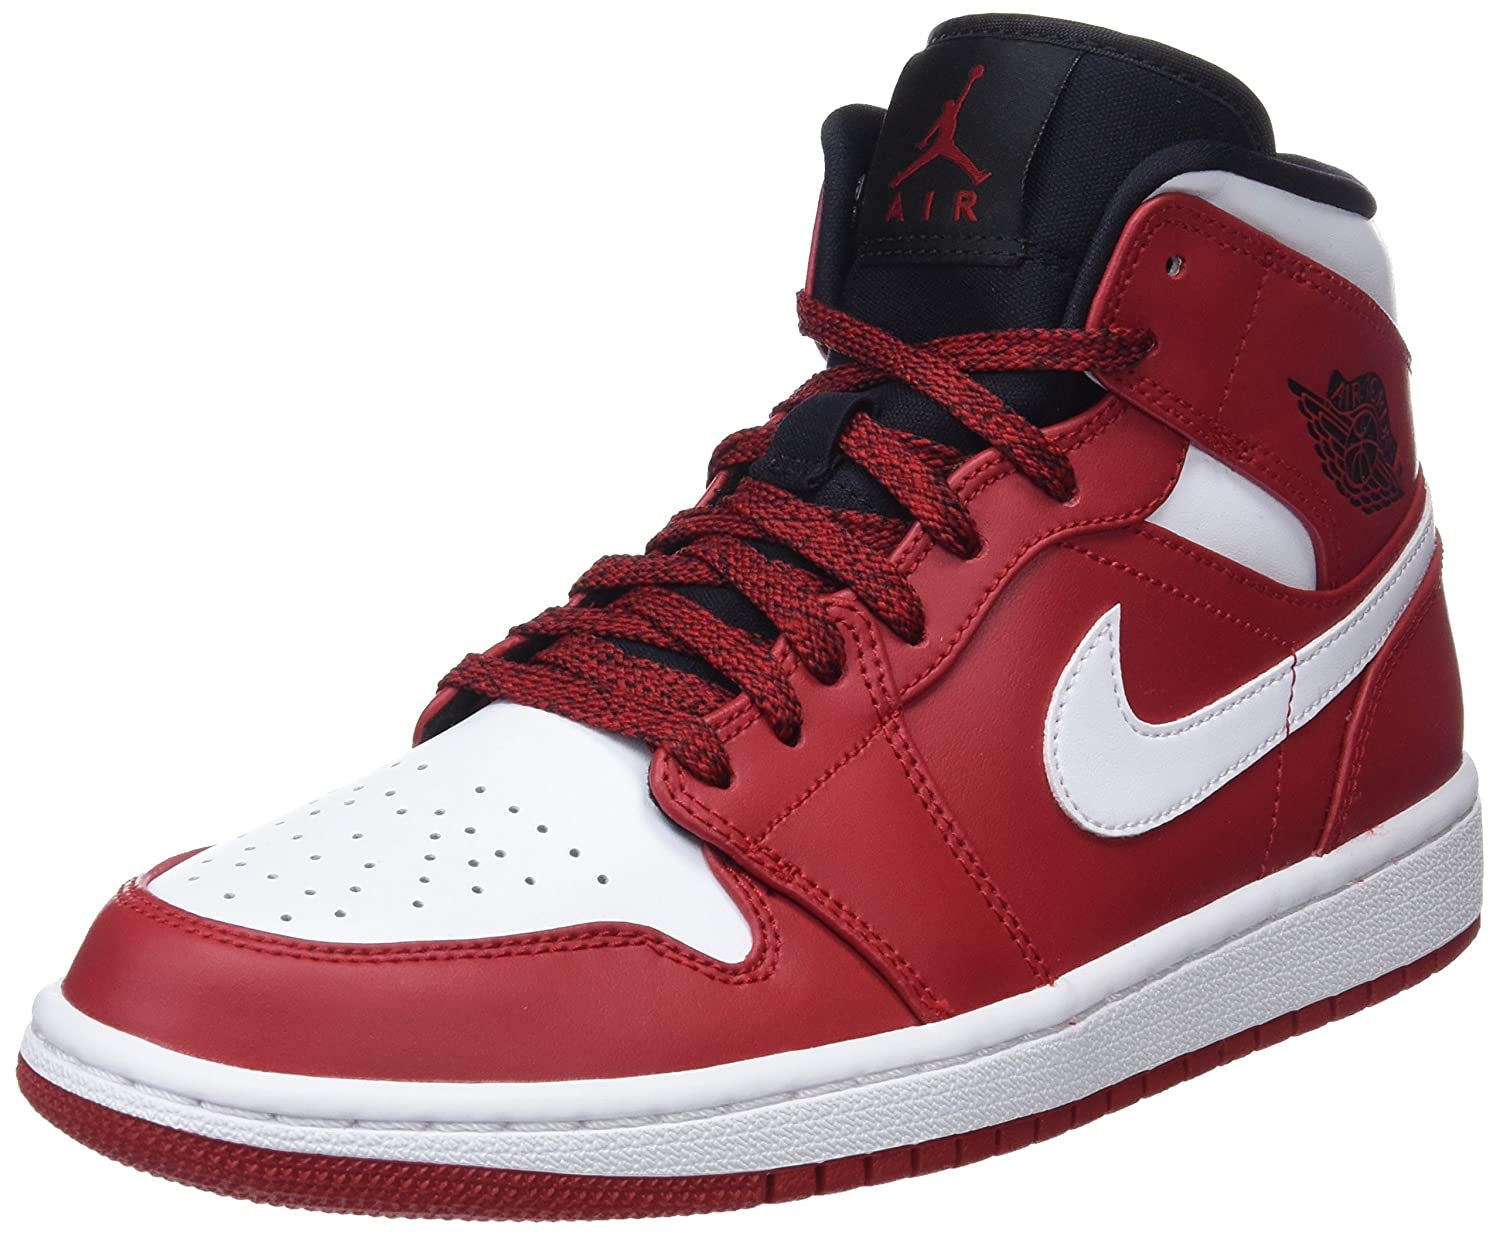 d7b18404cdd Amazon.com | Nike 554724-605: Mens Air Jordan 1 Mid Gym Red/White/Black  Basketball Sneakers (11 D(M) US Men) | Fashion Sneakers